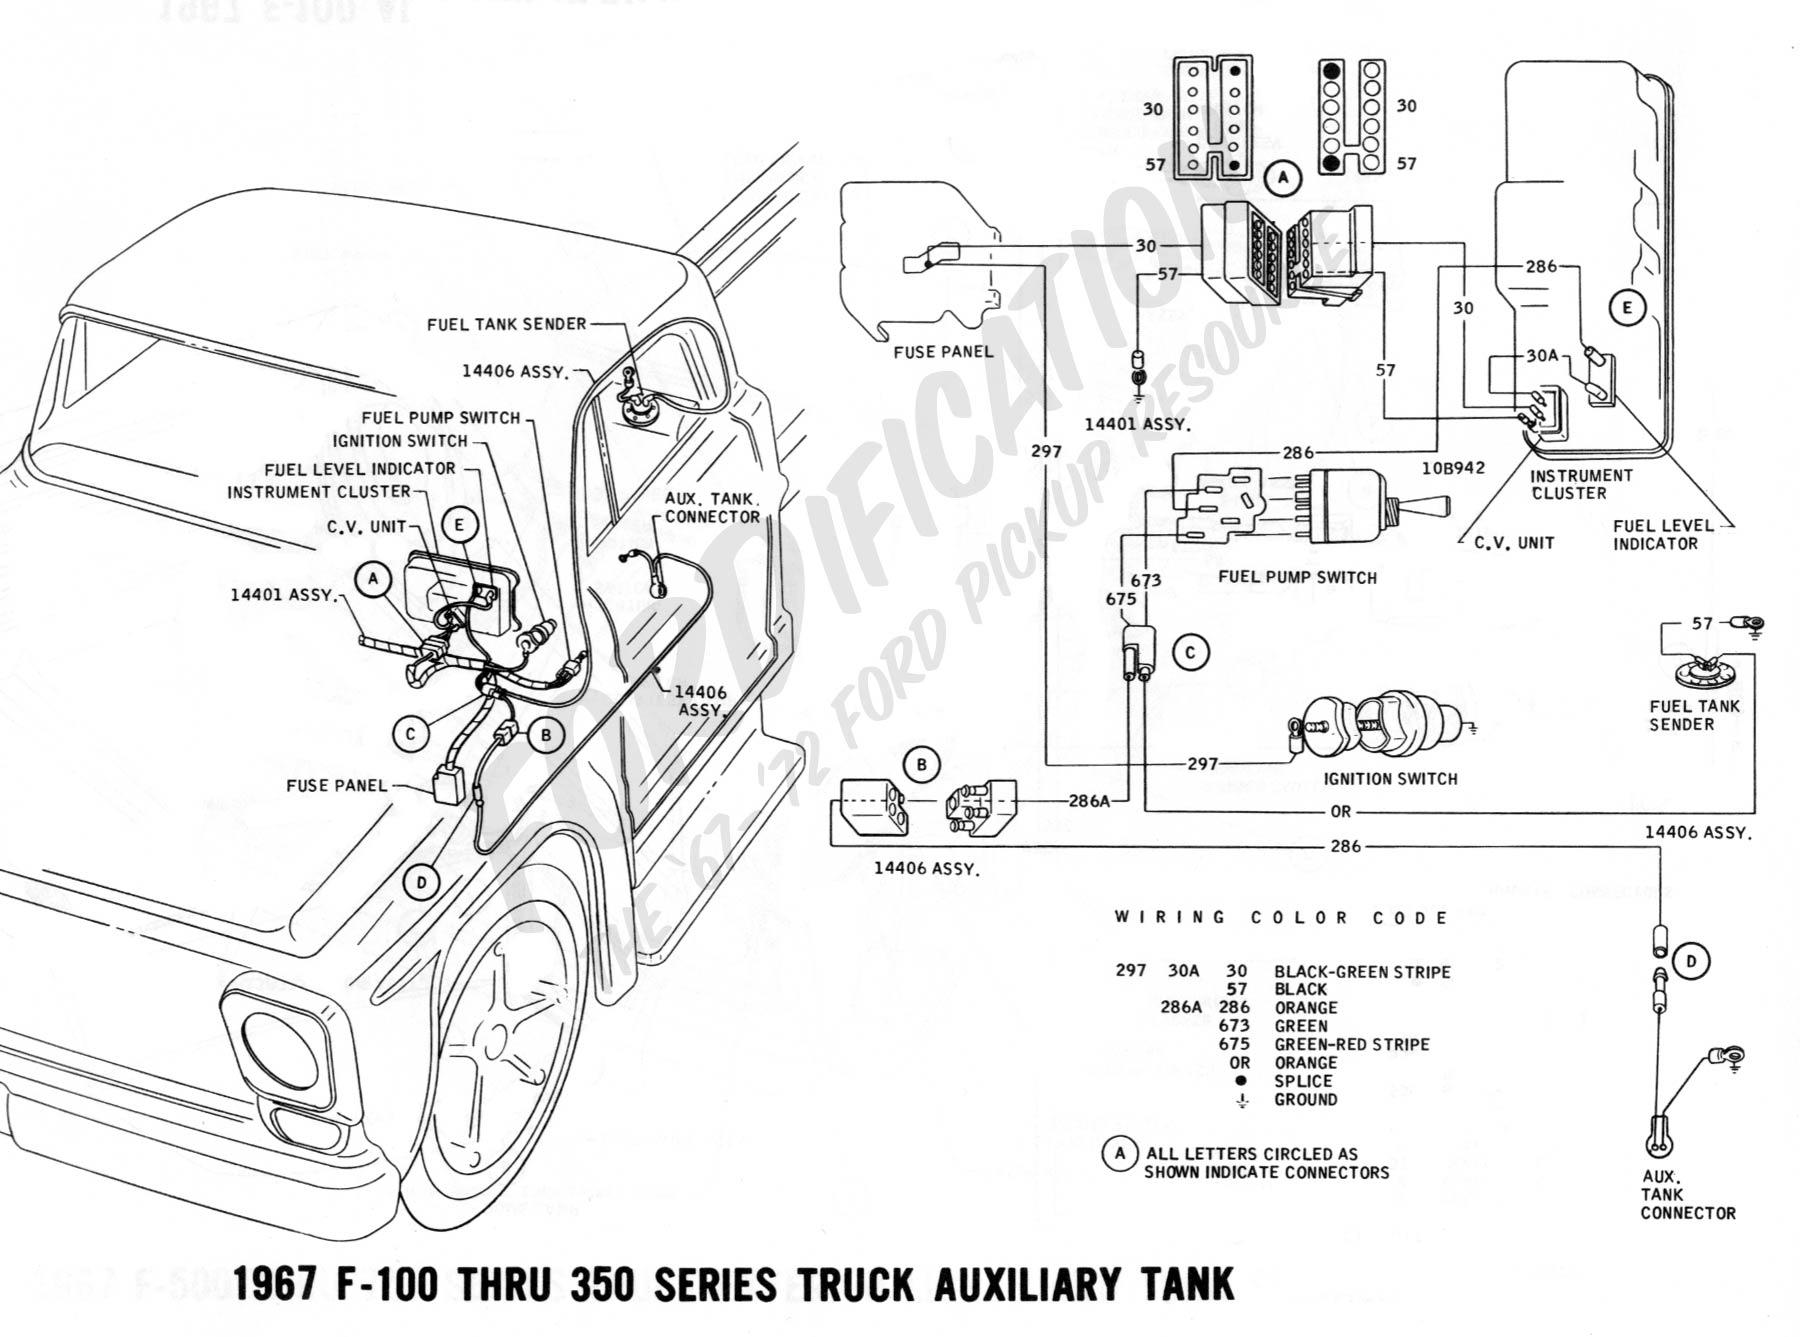 wiring 1967auxtank dual fuel wiring diagram wiring diagram byblank bpc1 dual fuel control wiring diagram at gsmx.co